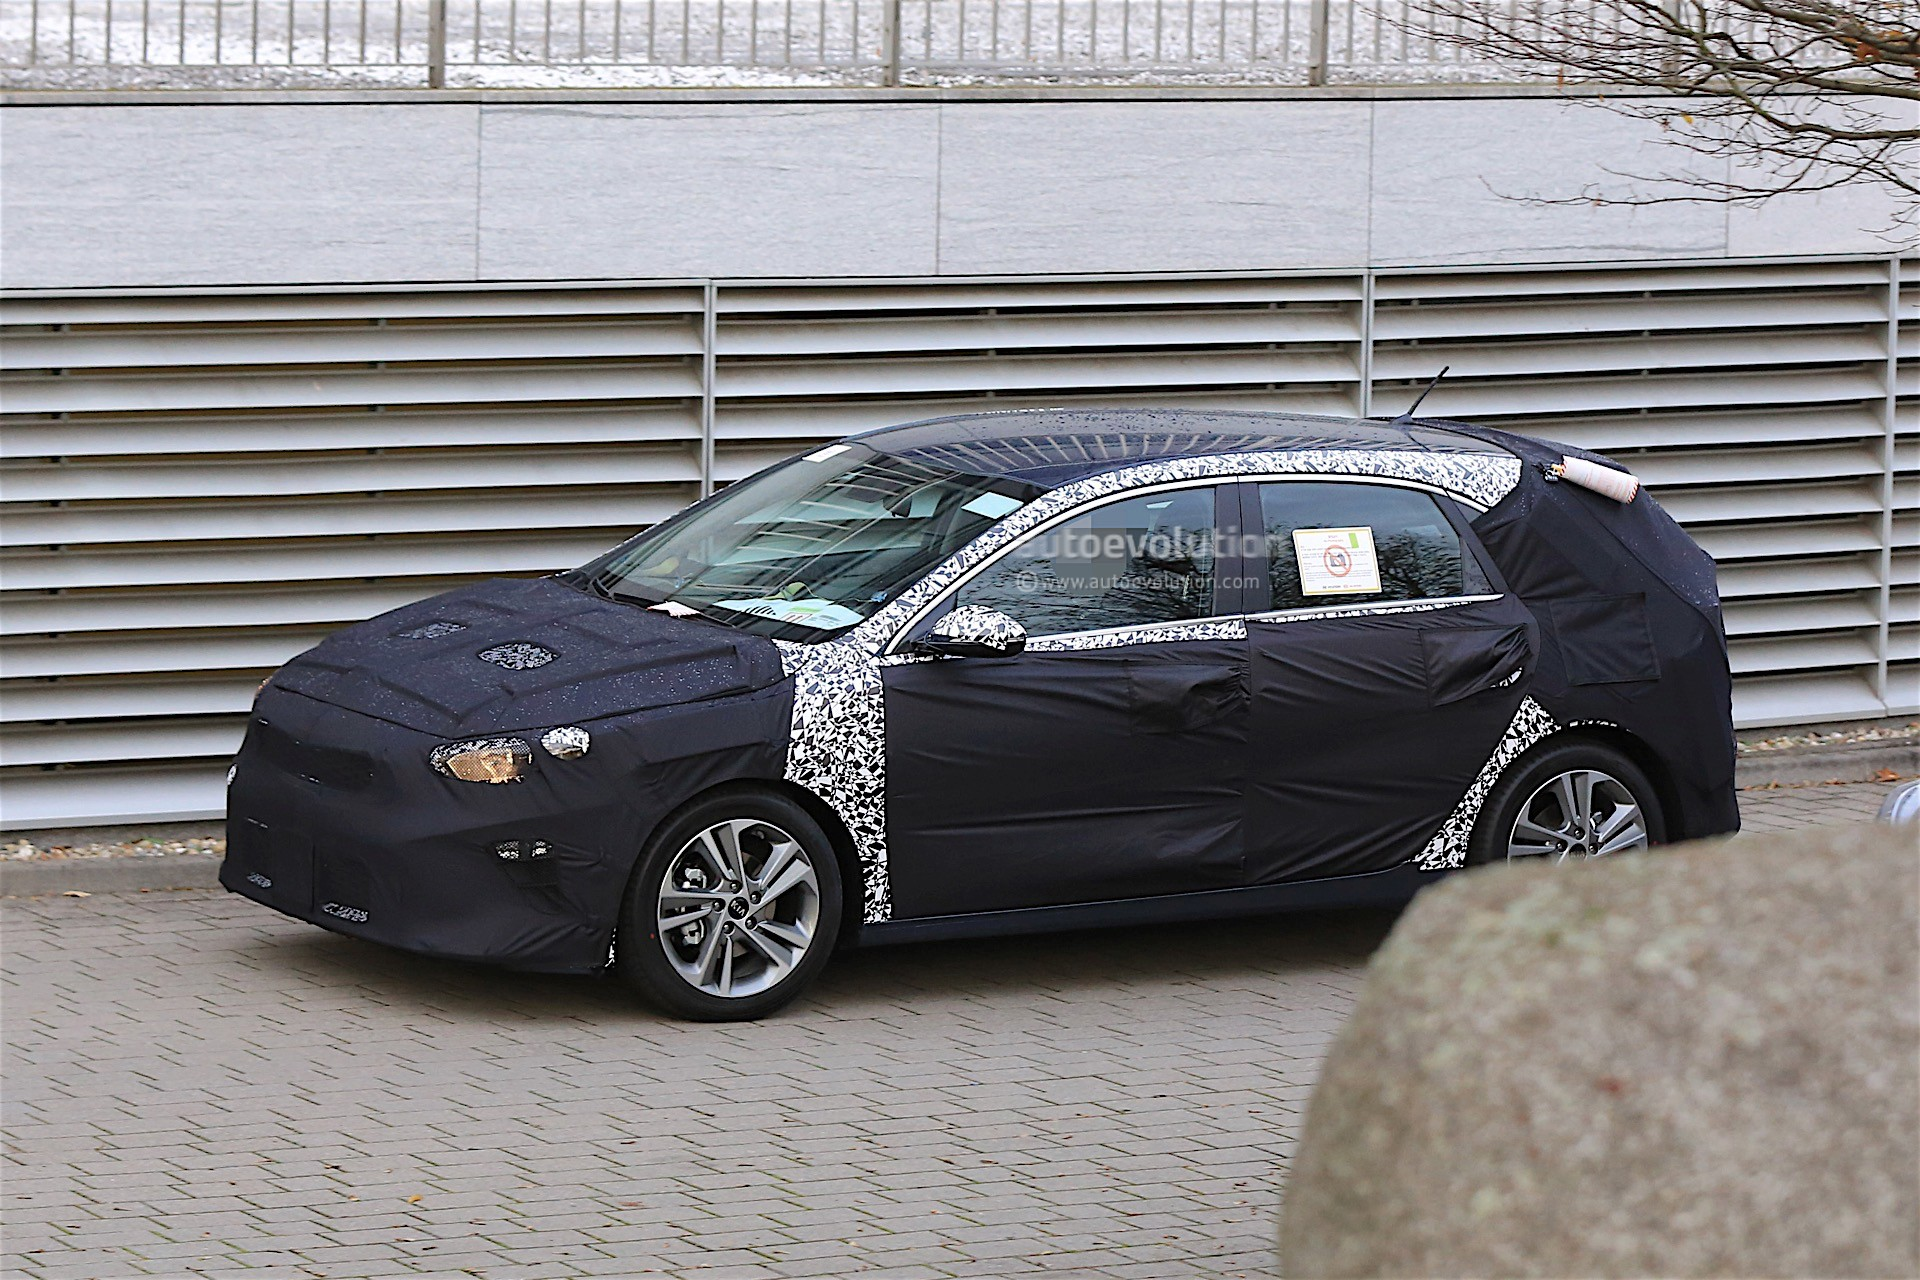 2018 kia ceed spied for the first time looks familiar autoevolution. Black Bedroom Furniture Sets. Home Design Ideas